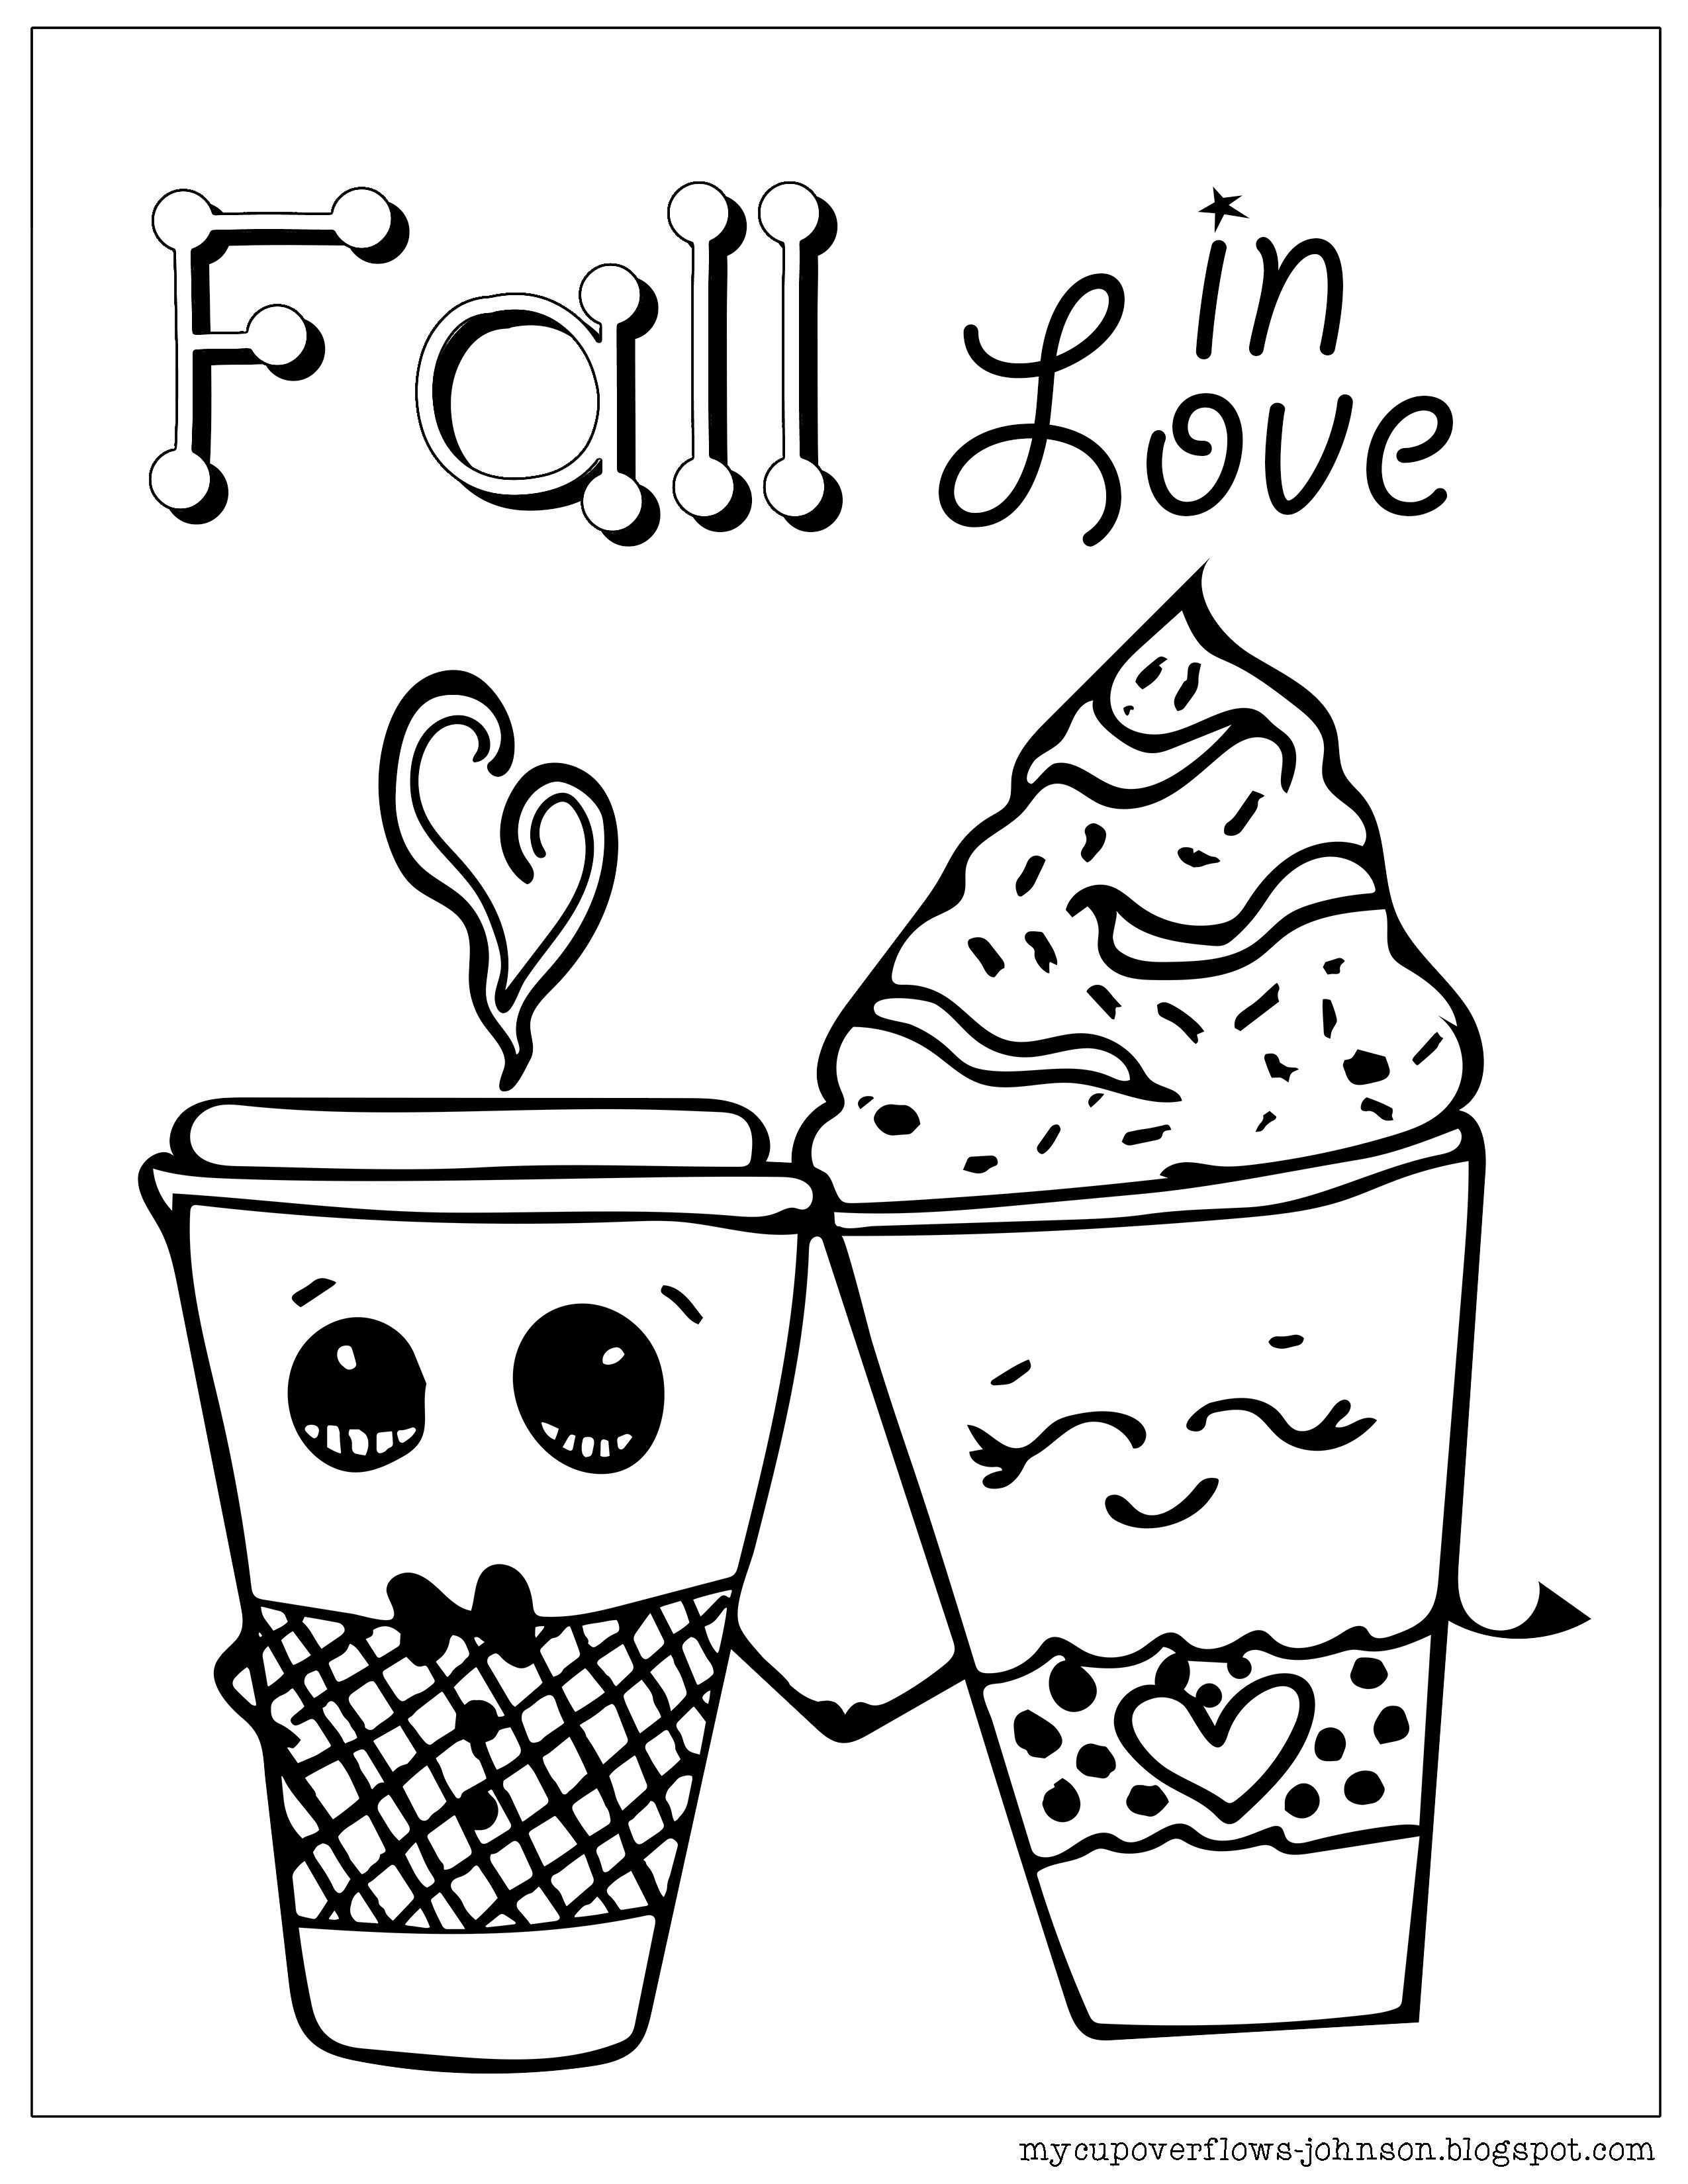 Fall In Love Coloring Page Love Coloring Pages Coloring Pages